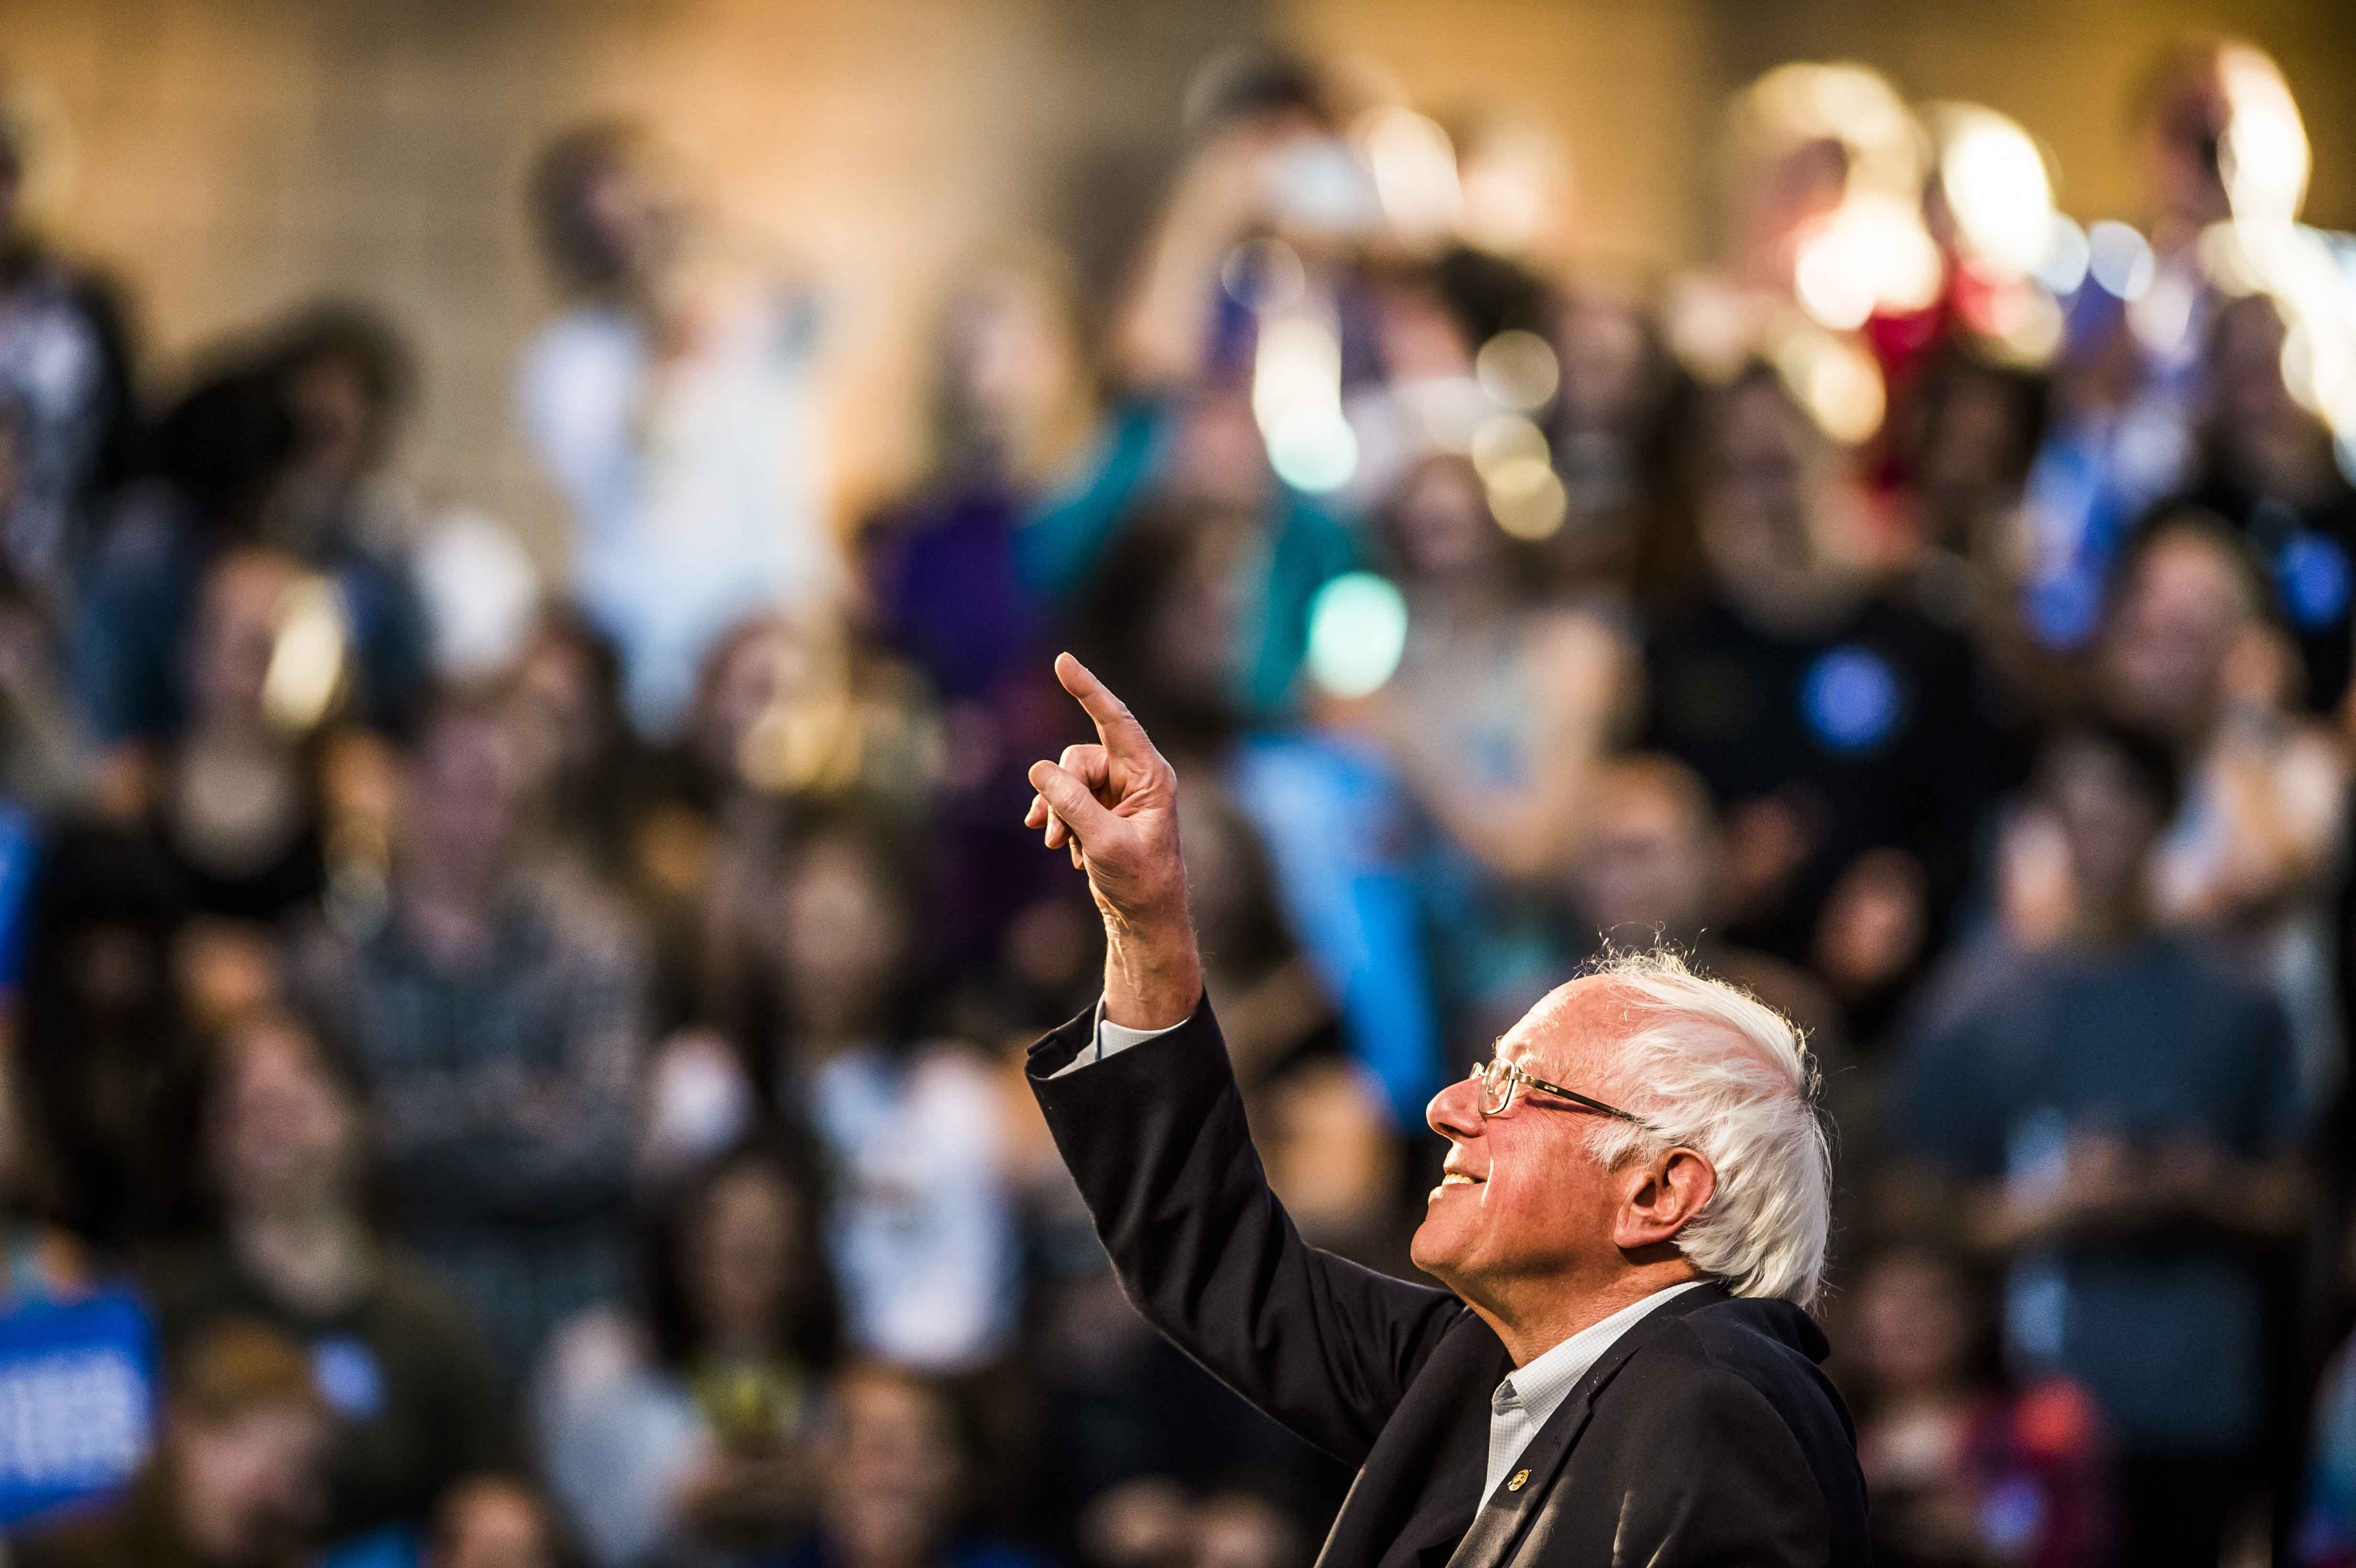 Vermont Sen. Bernie Sanders points to a supporter during a Get Out the Vote rally at Colorado College, in which he campaigned for Democratic presidential candidate Hillary Clinton, on Saturday, Nov. 5, 2016, in Colorado Springs, Colo. (Stacie Scott/Colorado Springs Gazette/TNS)